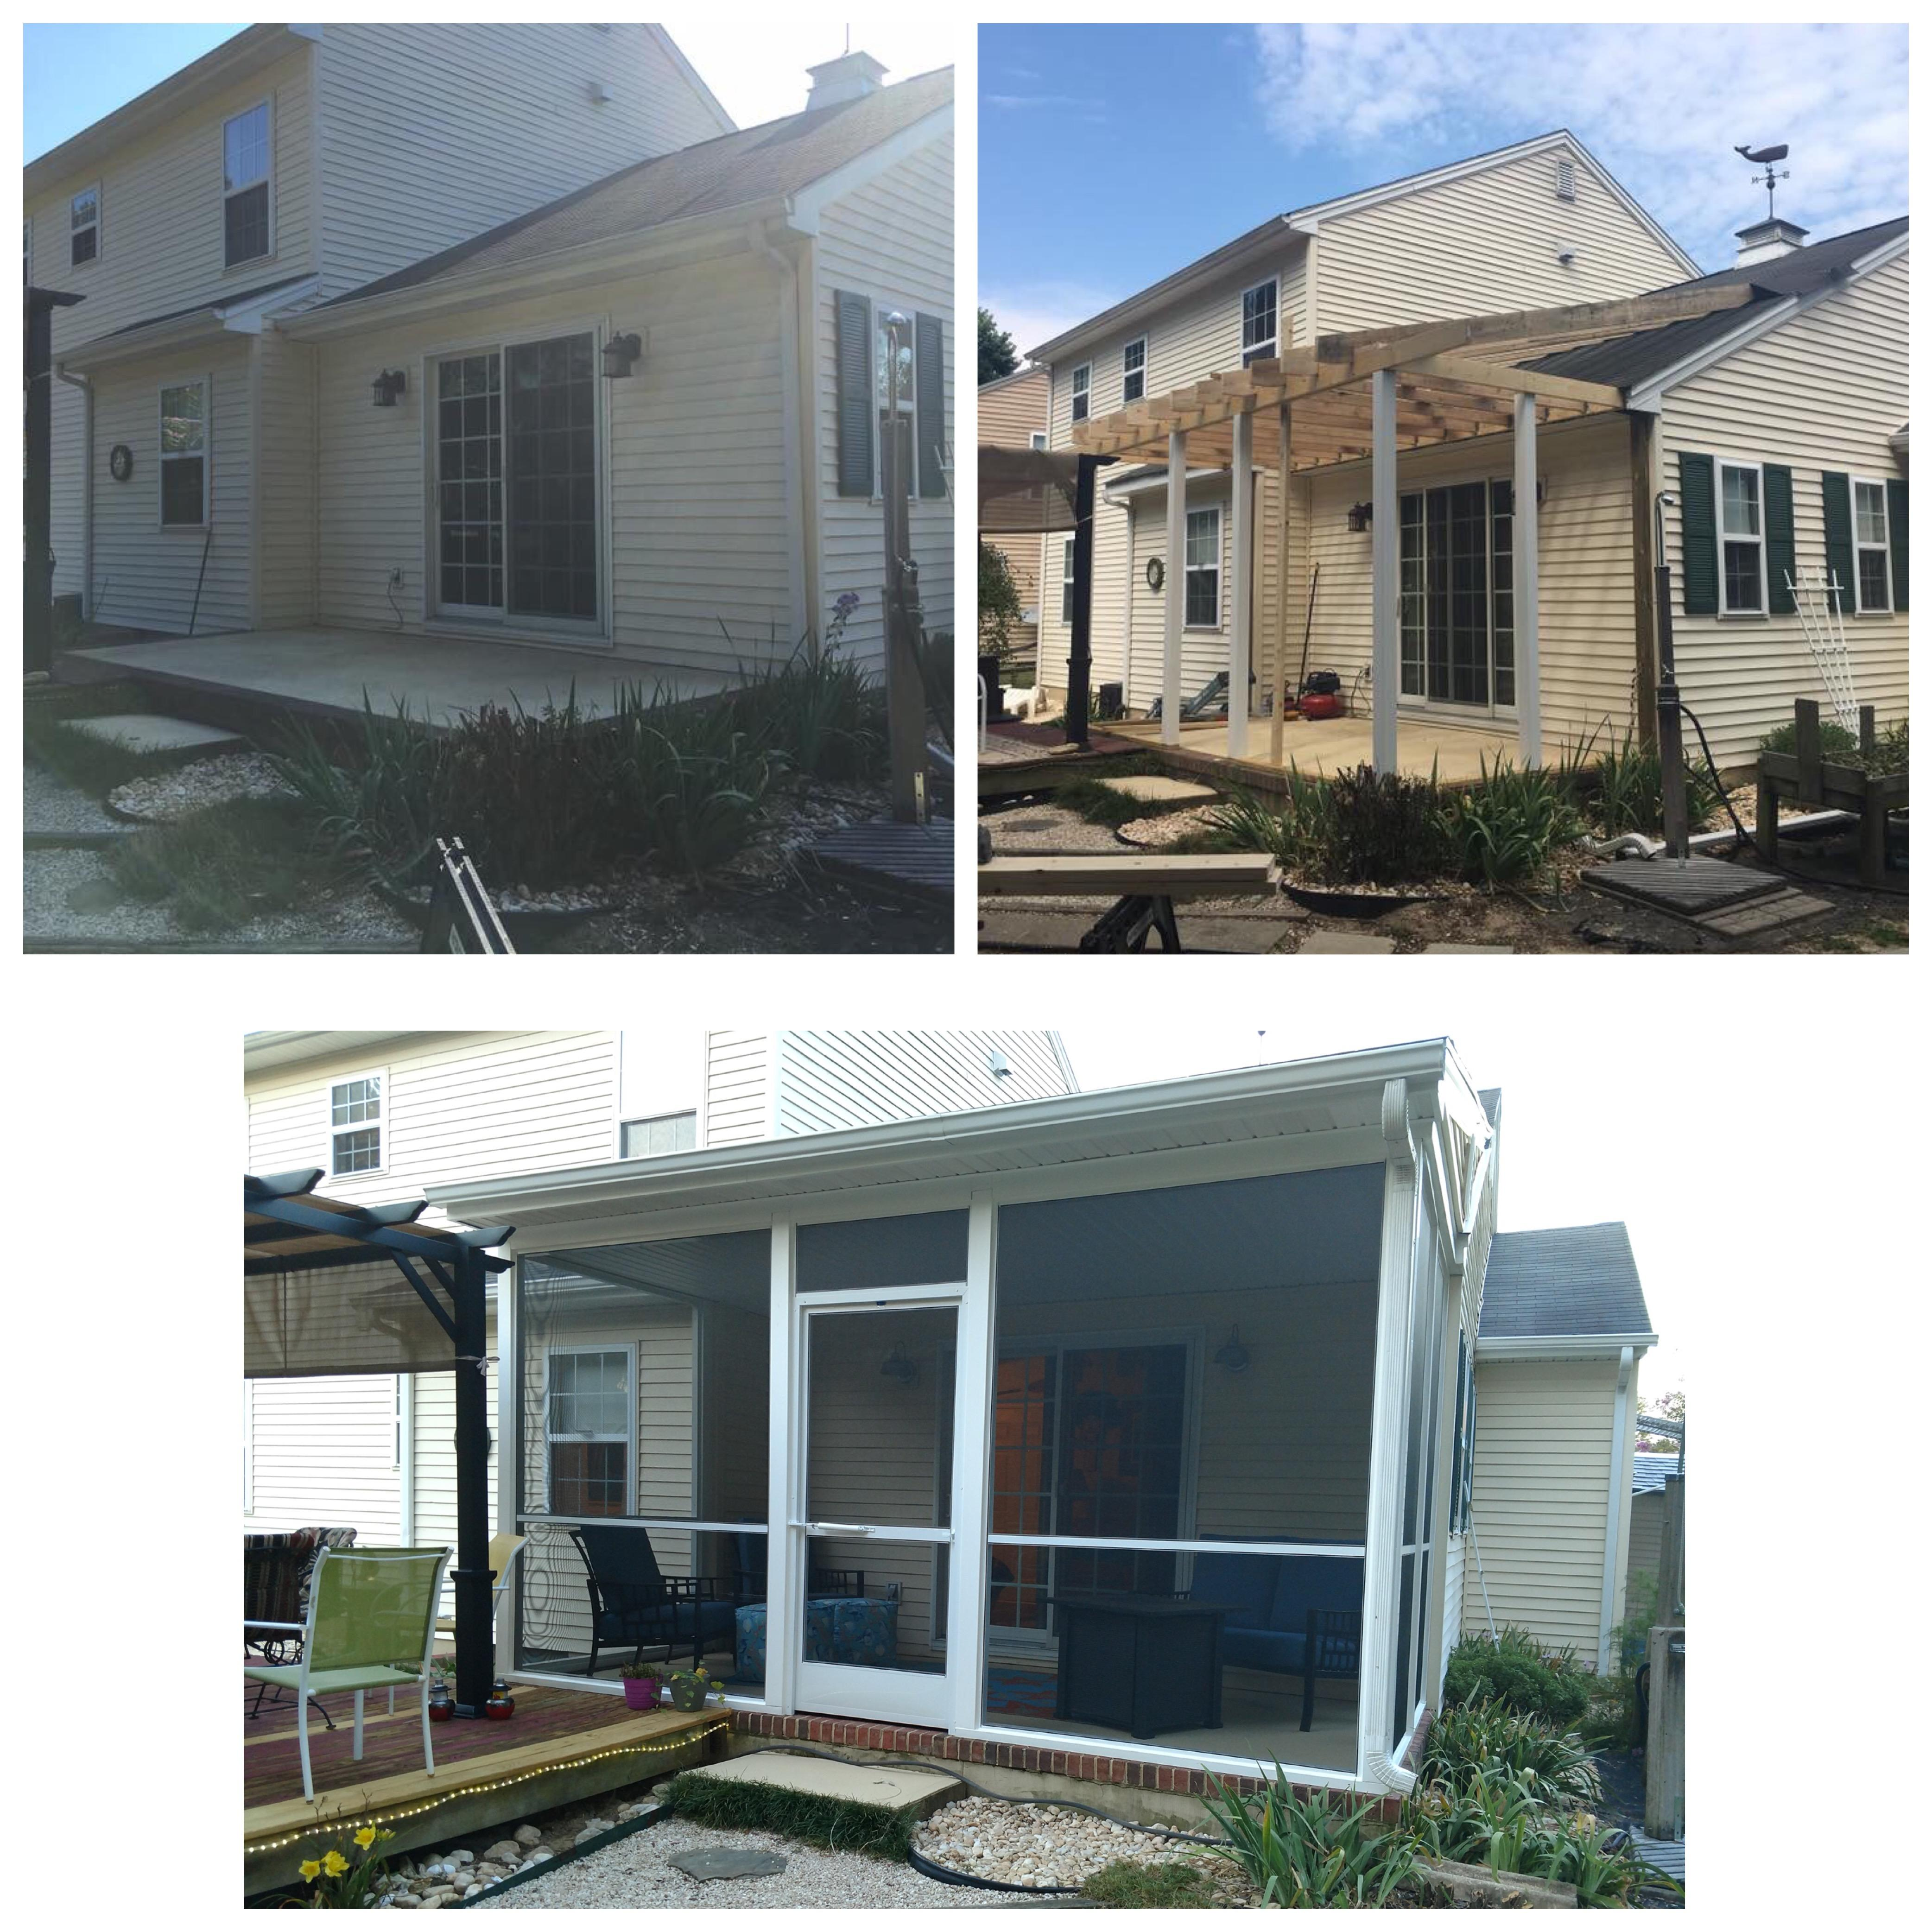 Accurate Upgrades Home Improvements LLC image 11